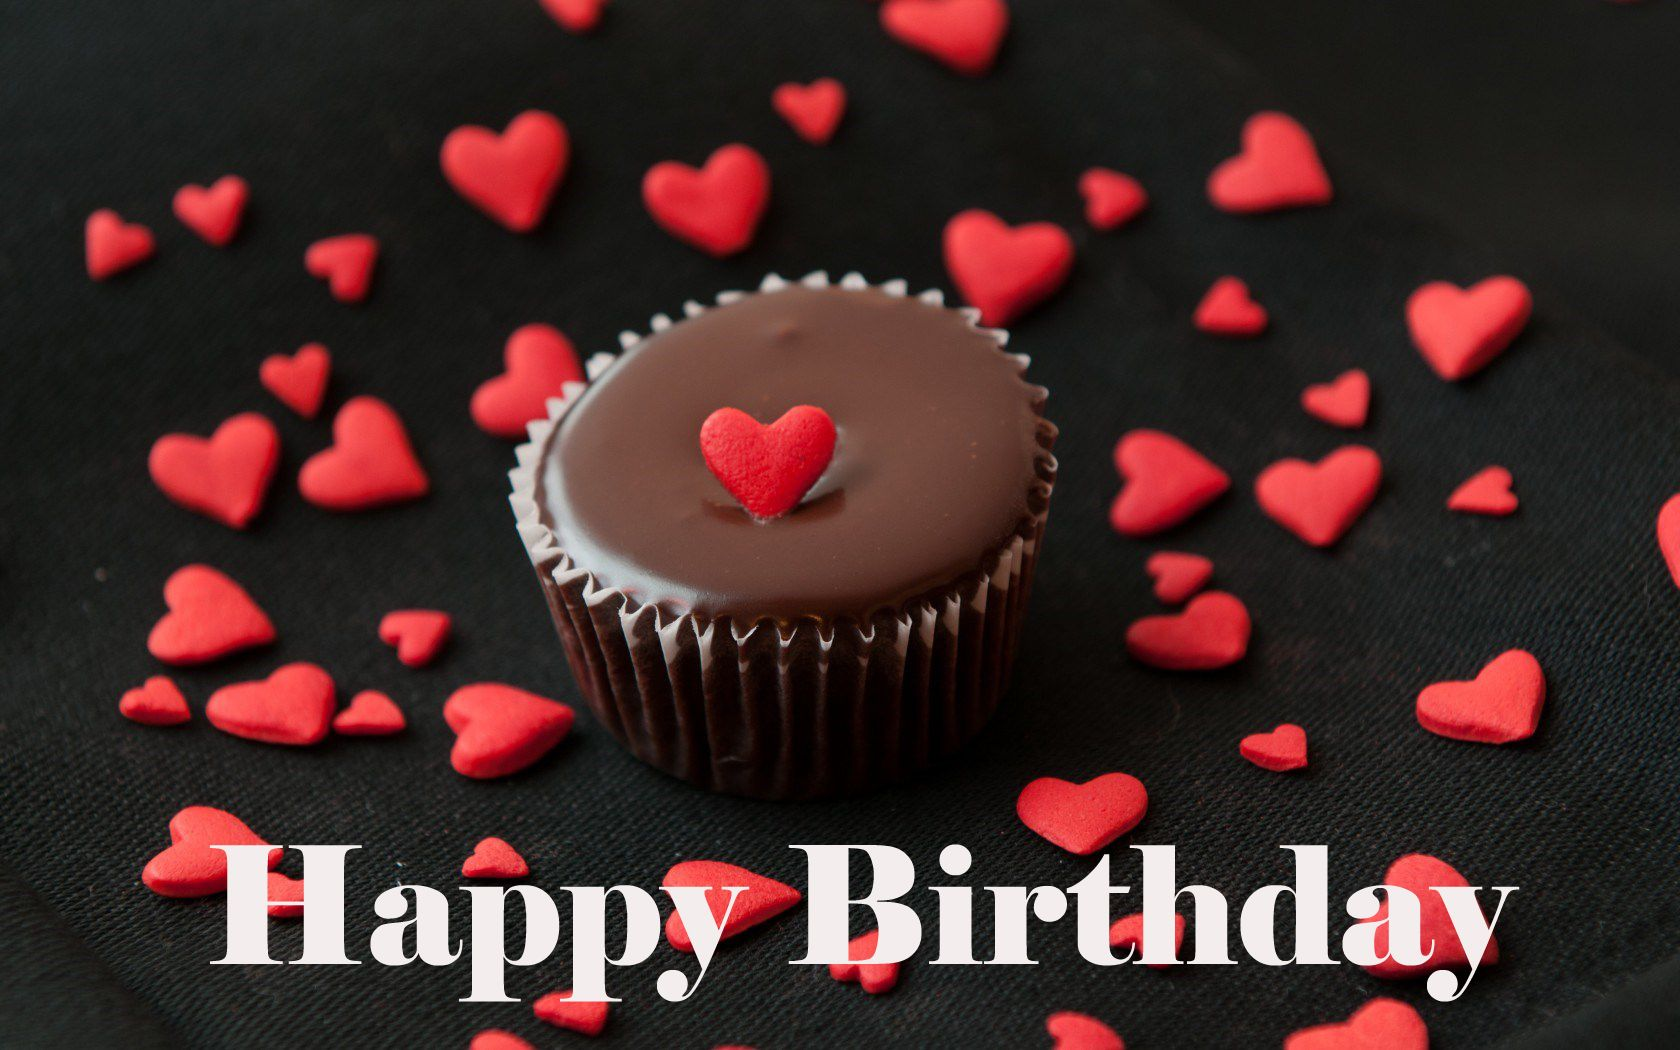 Happy Birthday Images Hd ~ Happy birthday hd wallpapers free downloadhd wallpaperss new happy